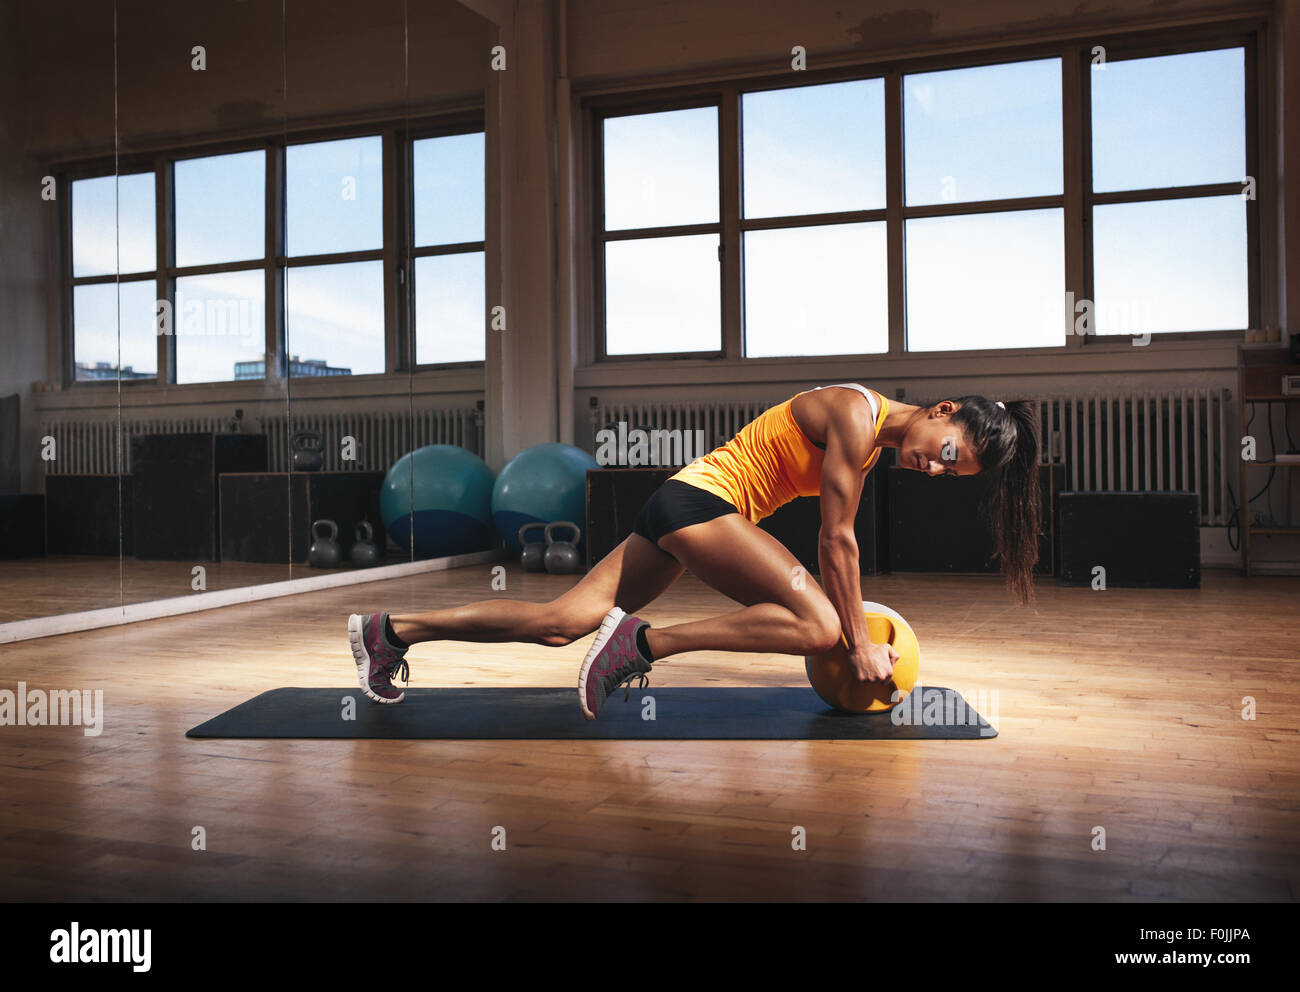 Muscular woman in gym working out on her core body. Strong woman exercising with kettlebell in sports club. - Stock Image